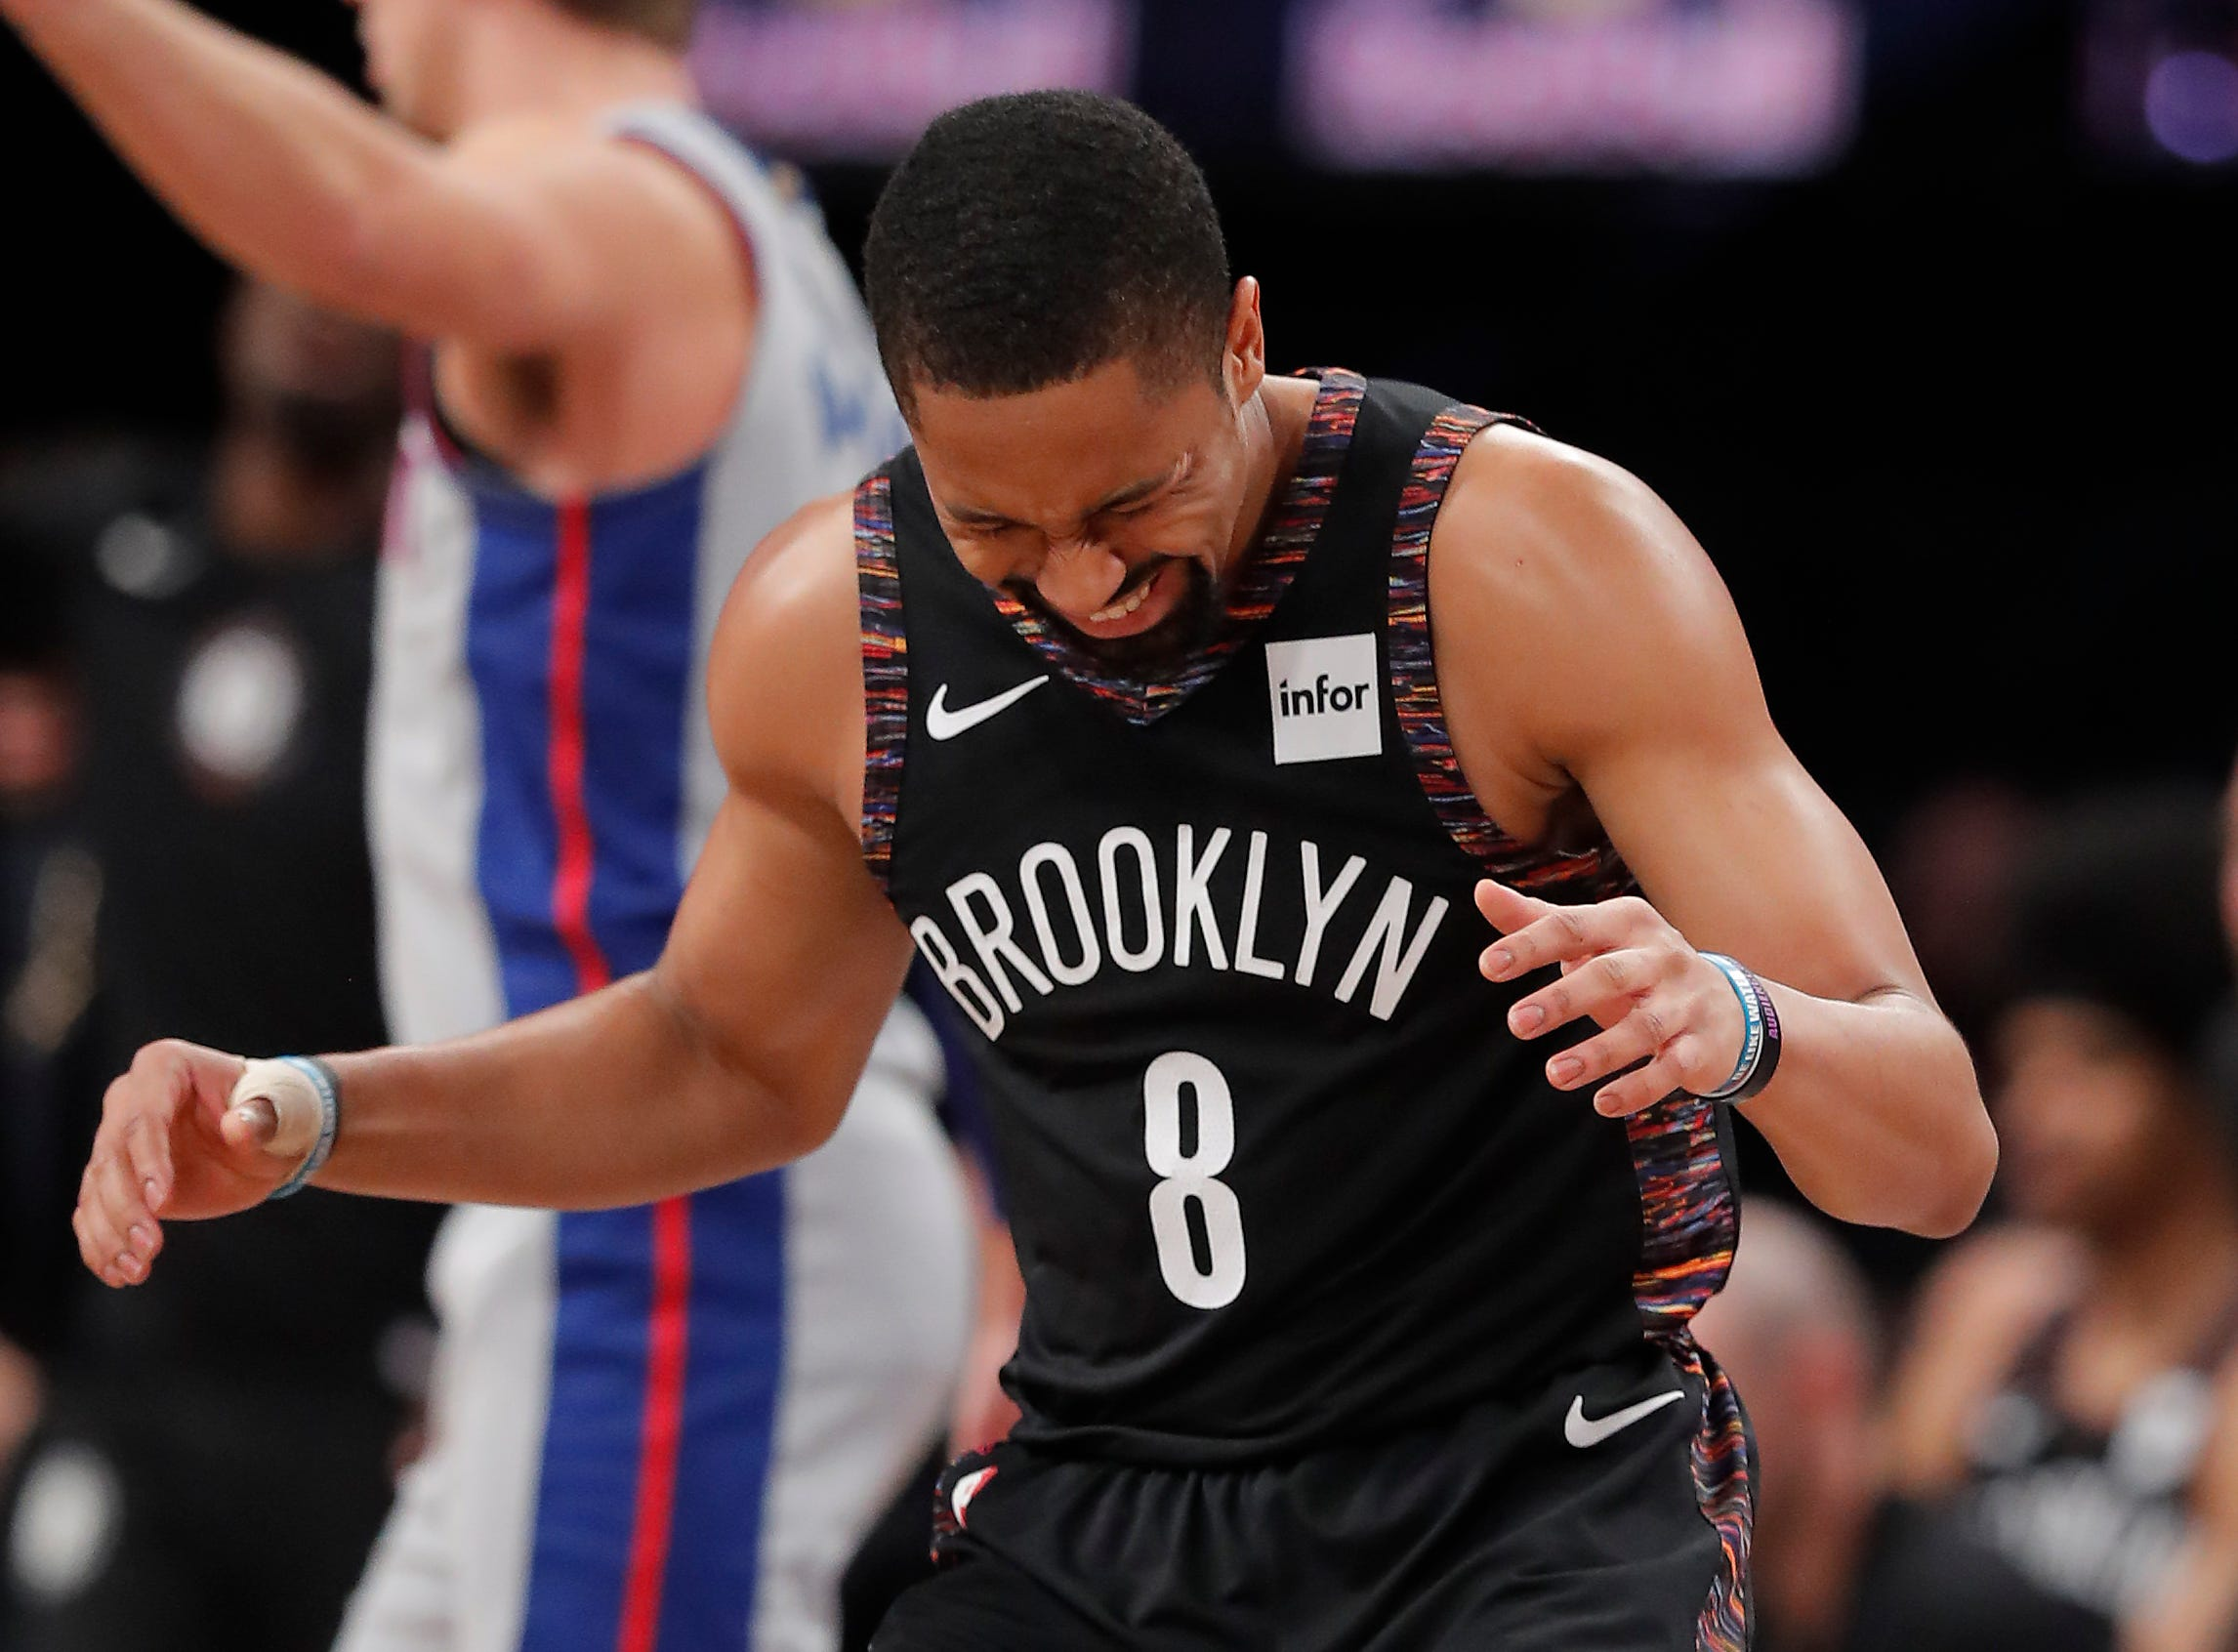 Brooklyn Nets guard Spencer Dinwiddie (8) reacts after missing a shot against the Detroit Pistons during the first quarter.